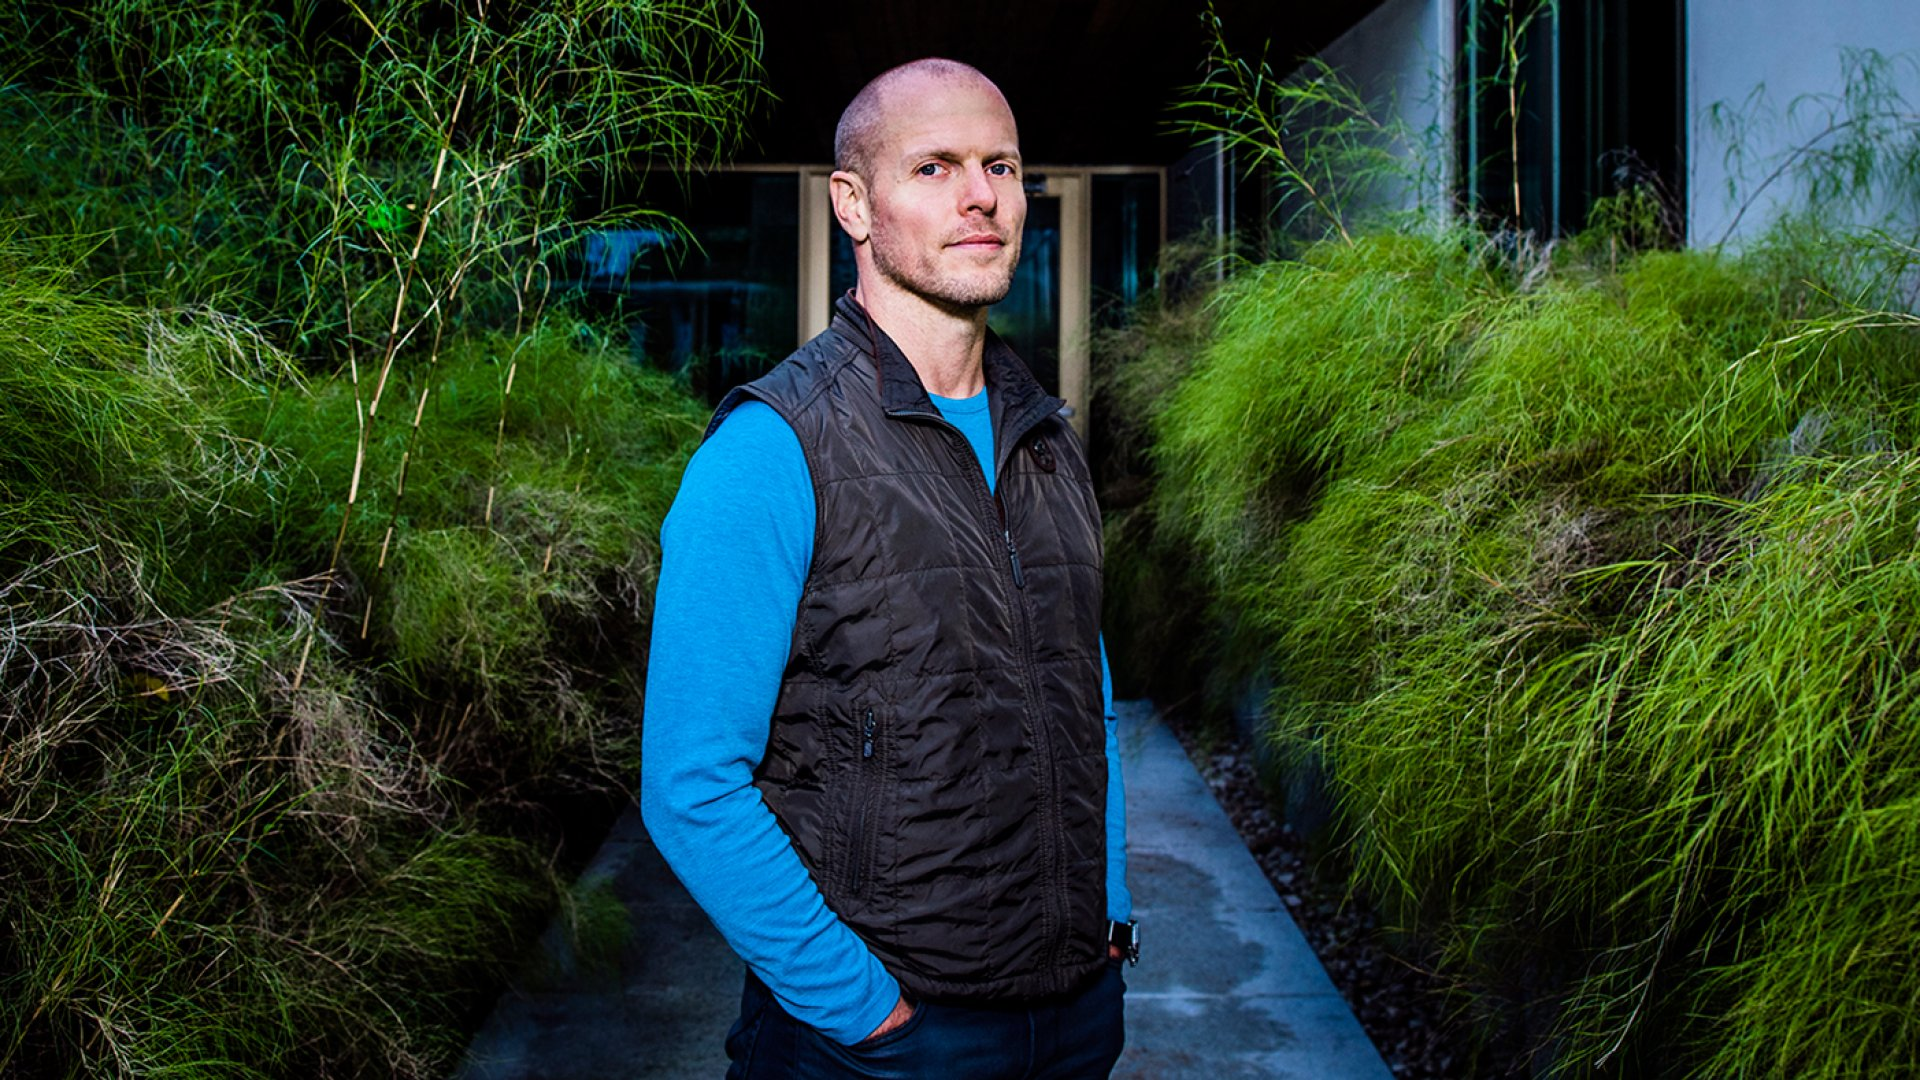 Investor, author, and podcaster Tim Ferriss.